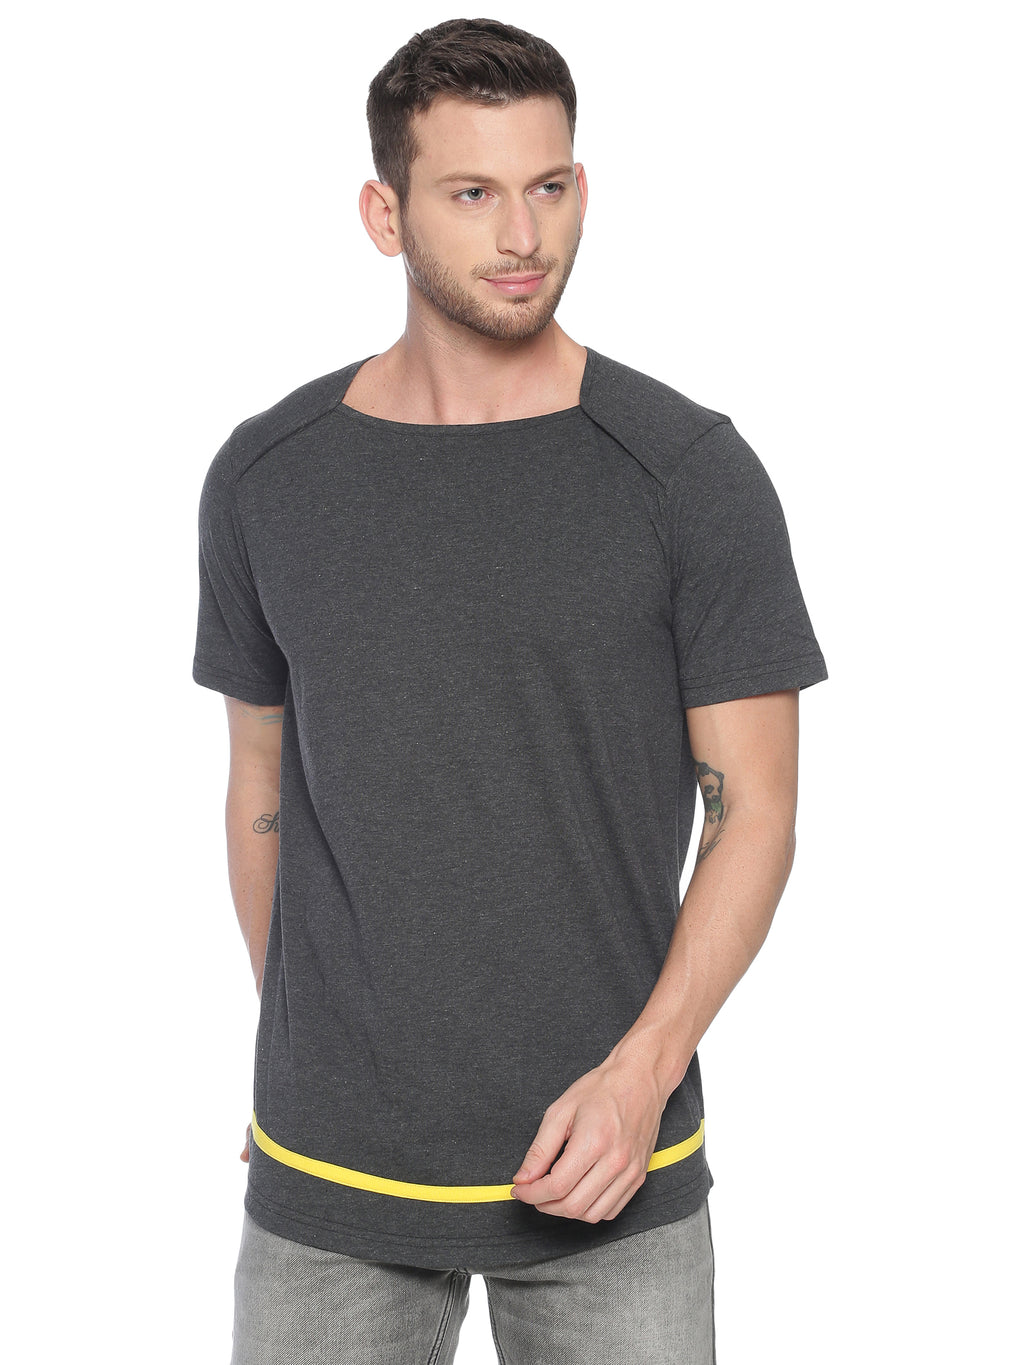 fashionable style T-Shirt ideal for men with Sqaure Neck Curve hem